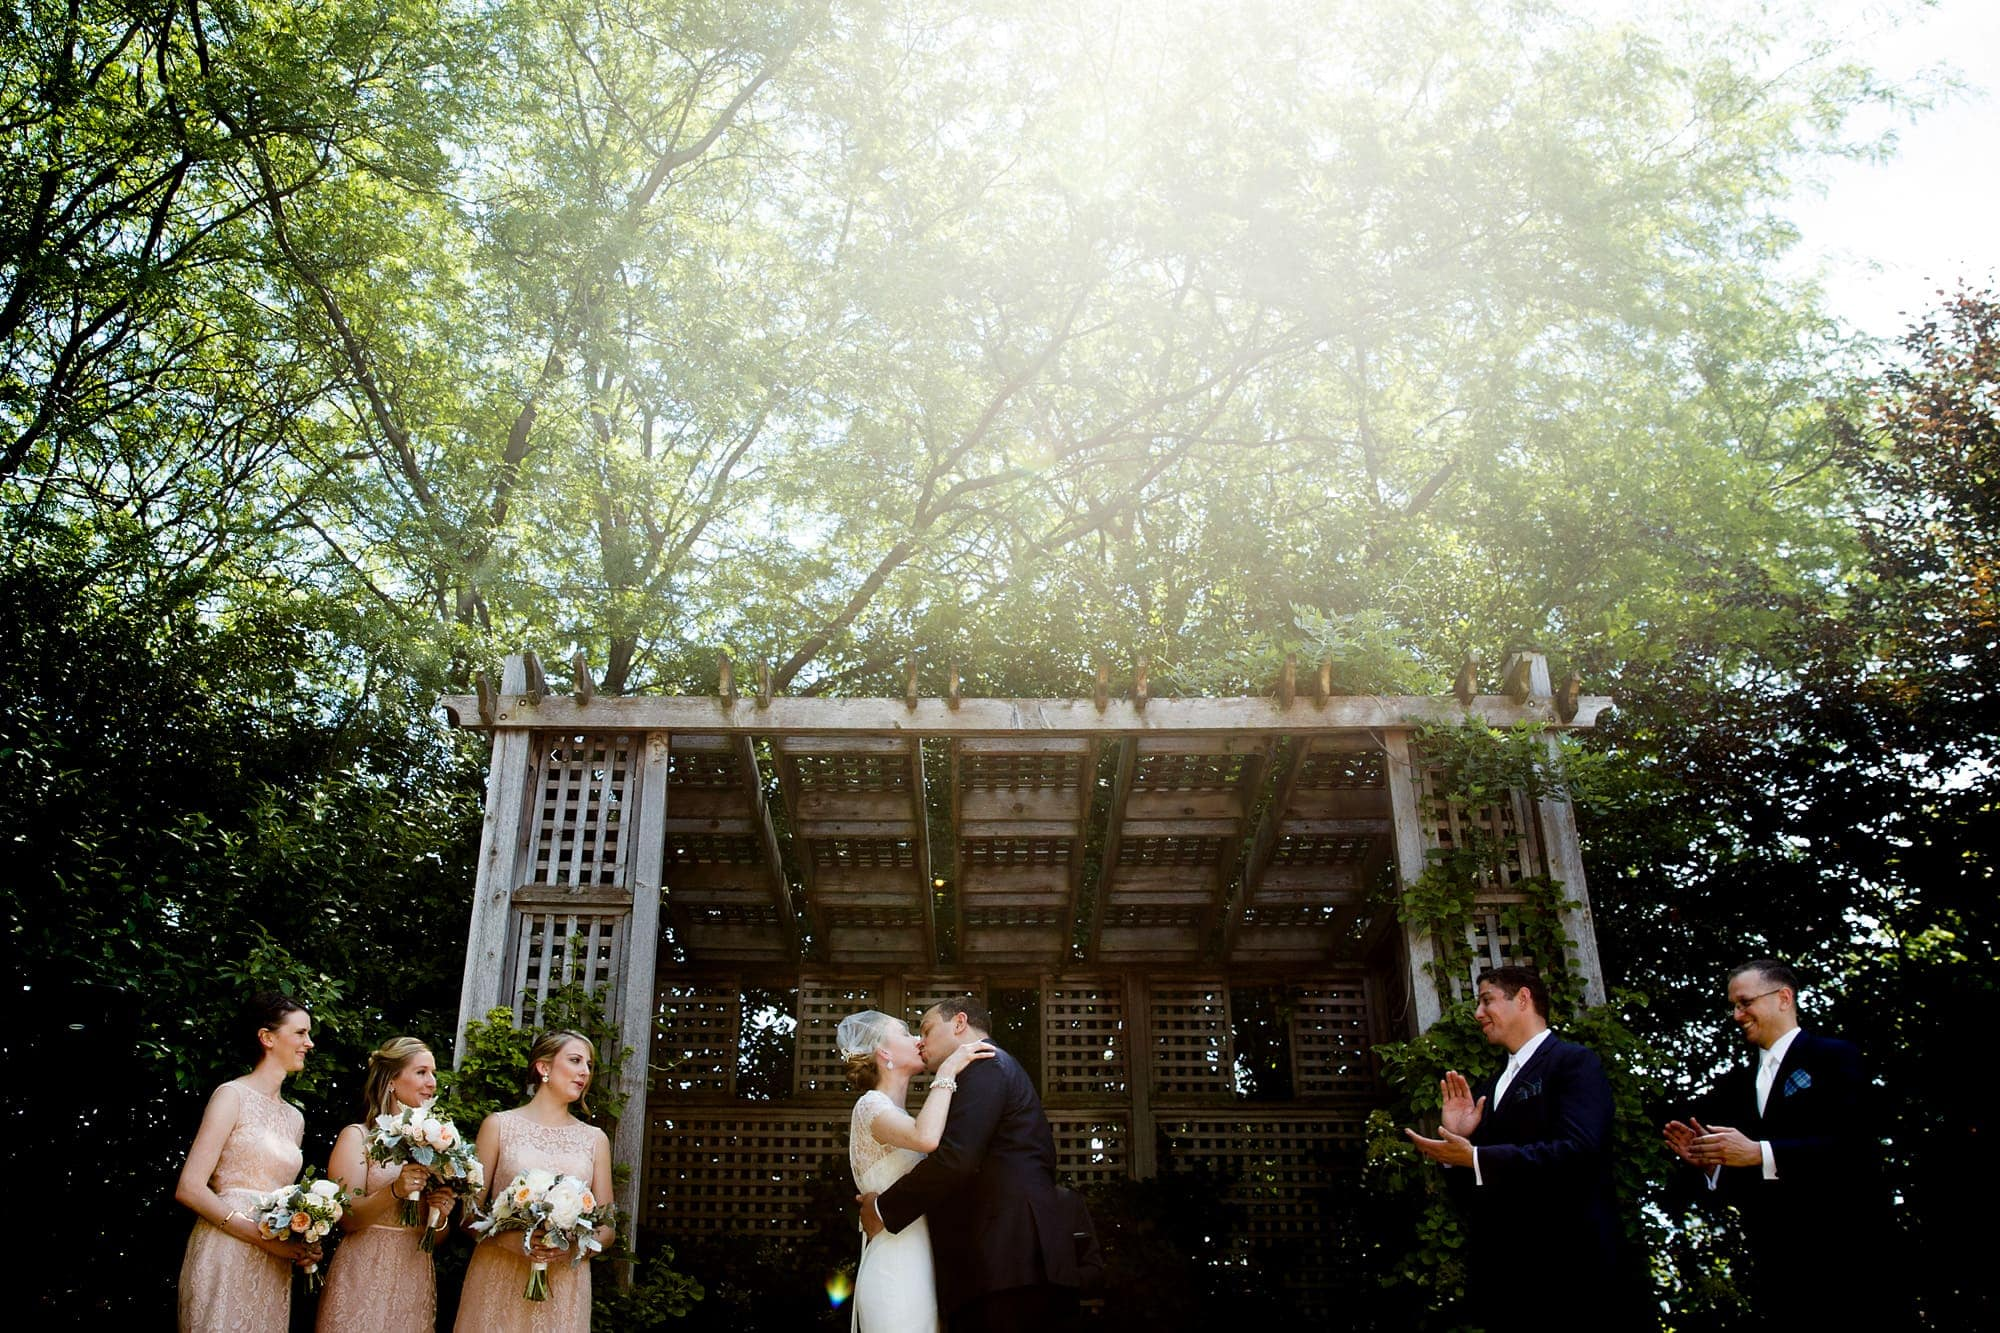 A groom kisses hits bride for the first time under the arbor outside during their morning wedding at Galleria Marchetti in Chicago, Illinois.